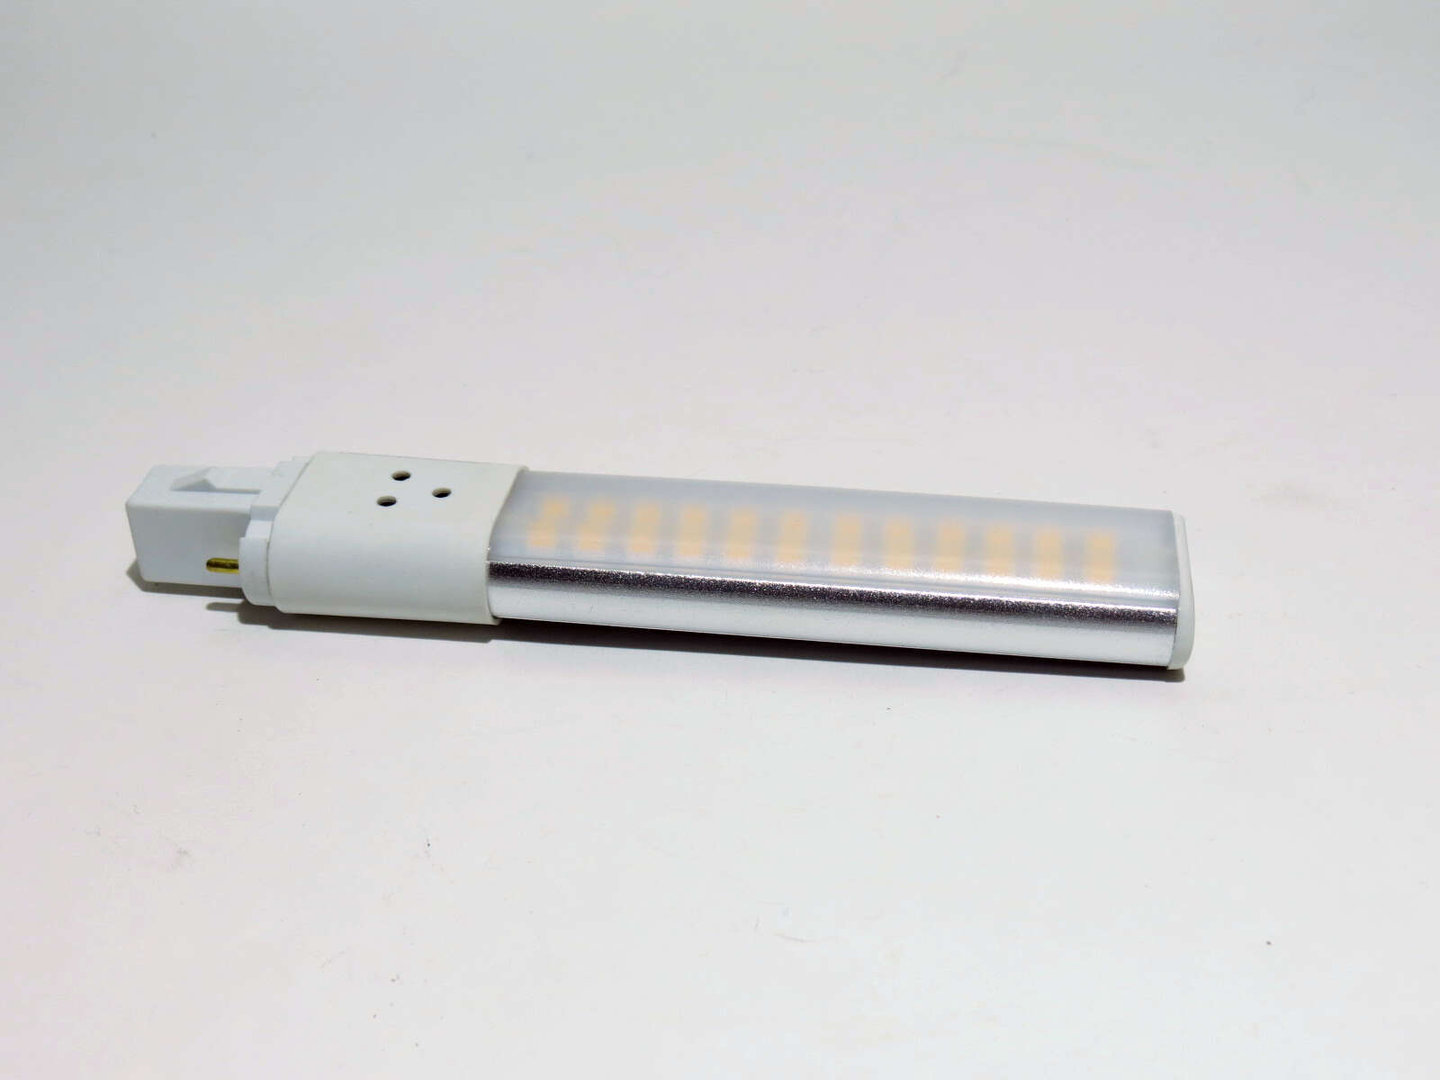 Marmortisch Frostsicher Led G23